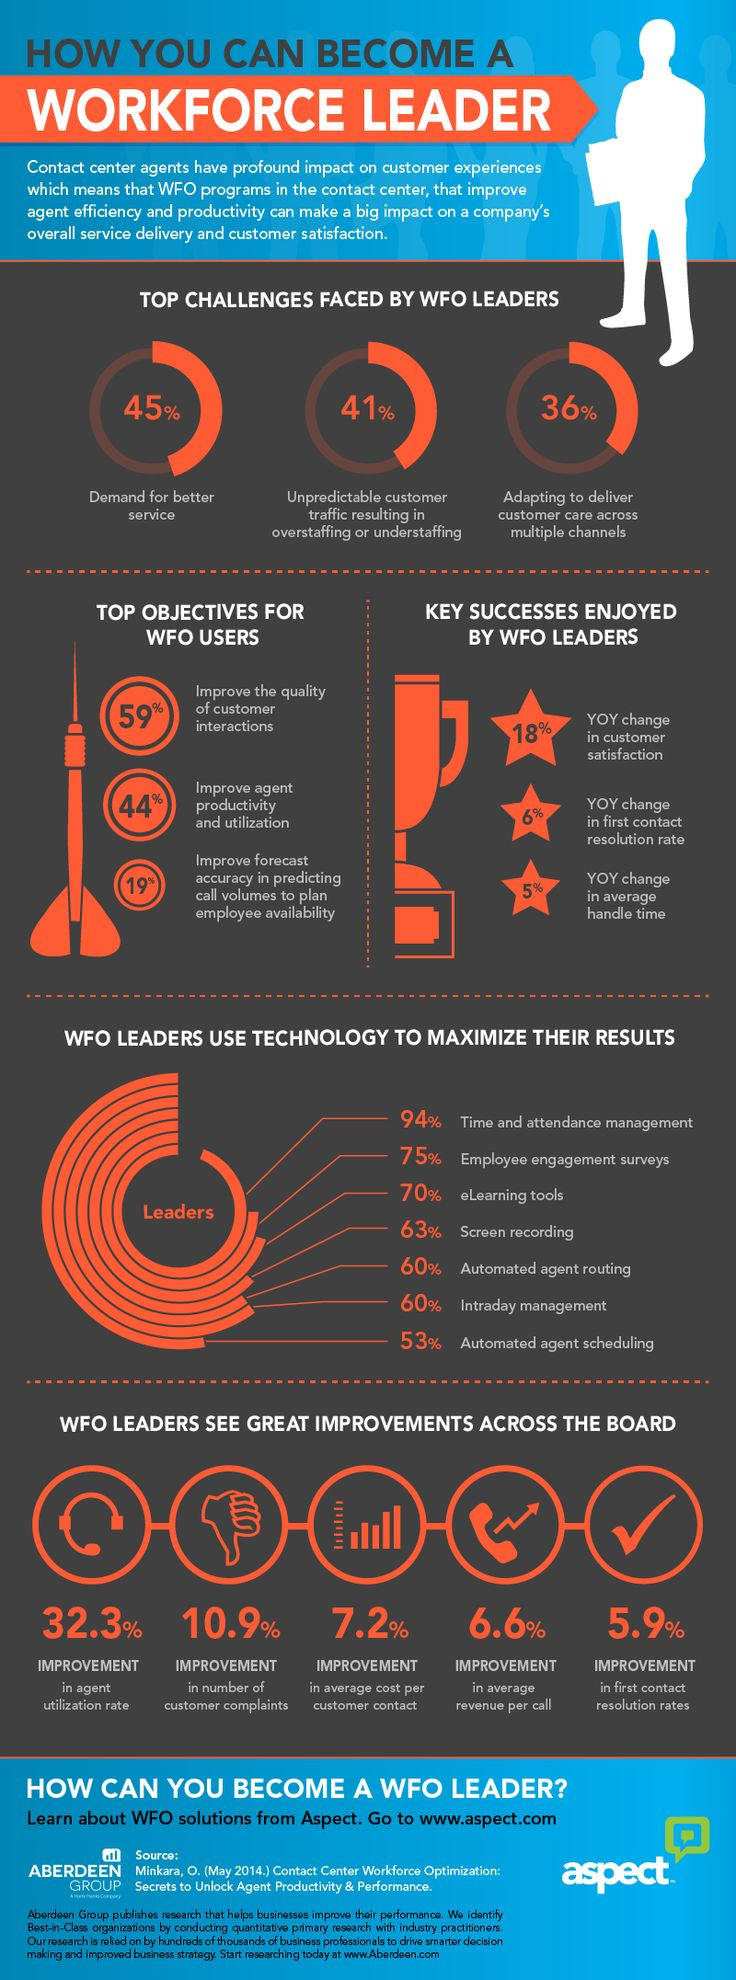 Workforce Optimization infographic featuring research from Aberdeen Group http://blogs.aspect.com/2014/09/08/workforce-optimization-tools-for-great-customer-experiences/